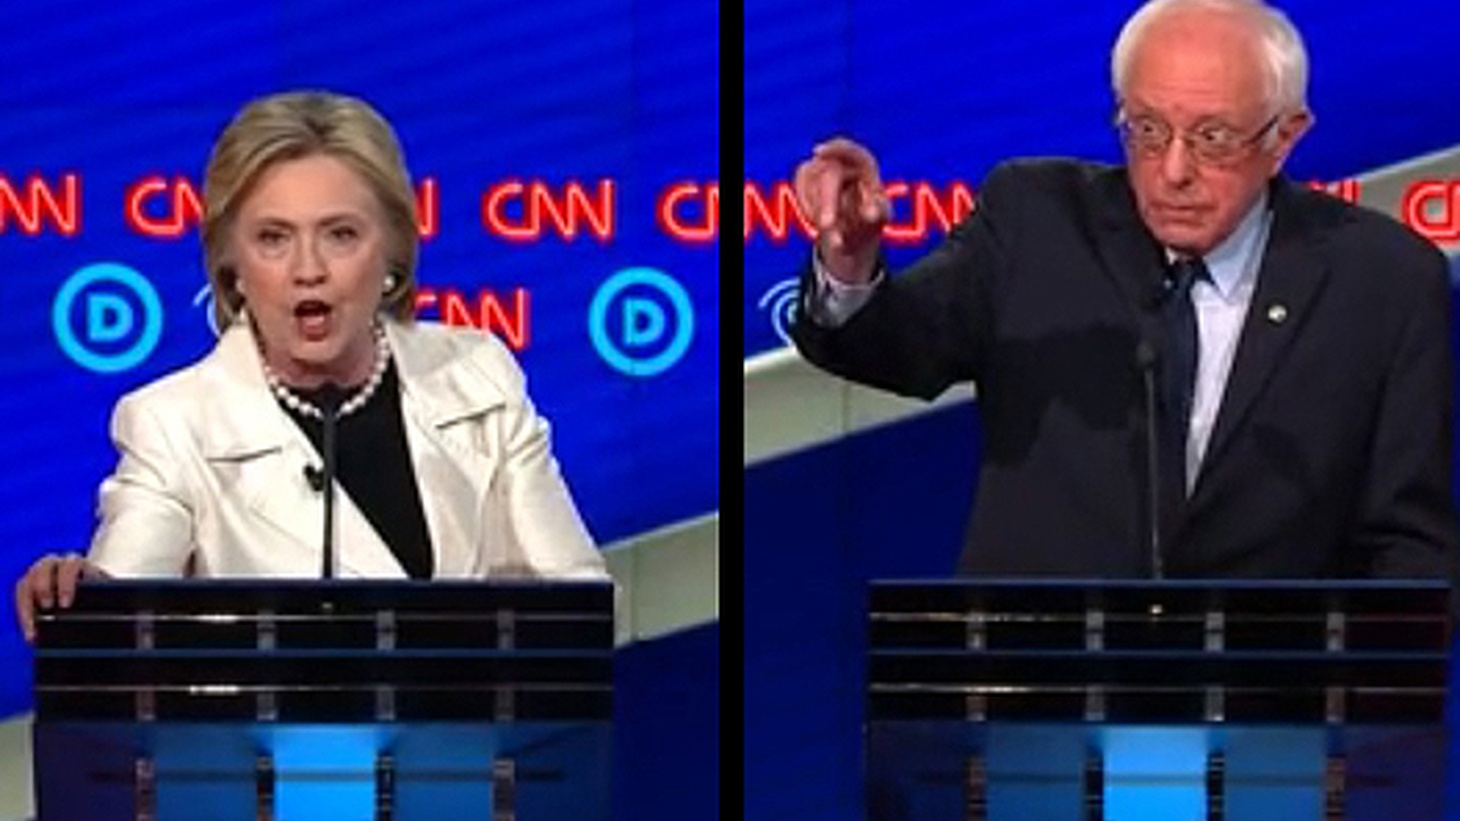 We assess the bitterly contested New York primary race between Hillary Clinton and Bernie Sanders, and their latest hot-tempered debate.